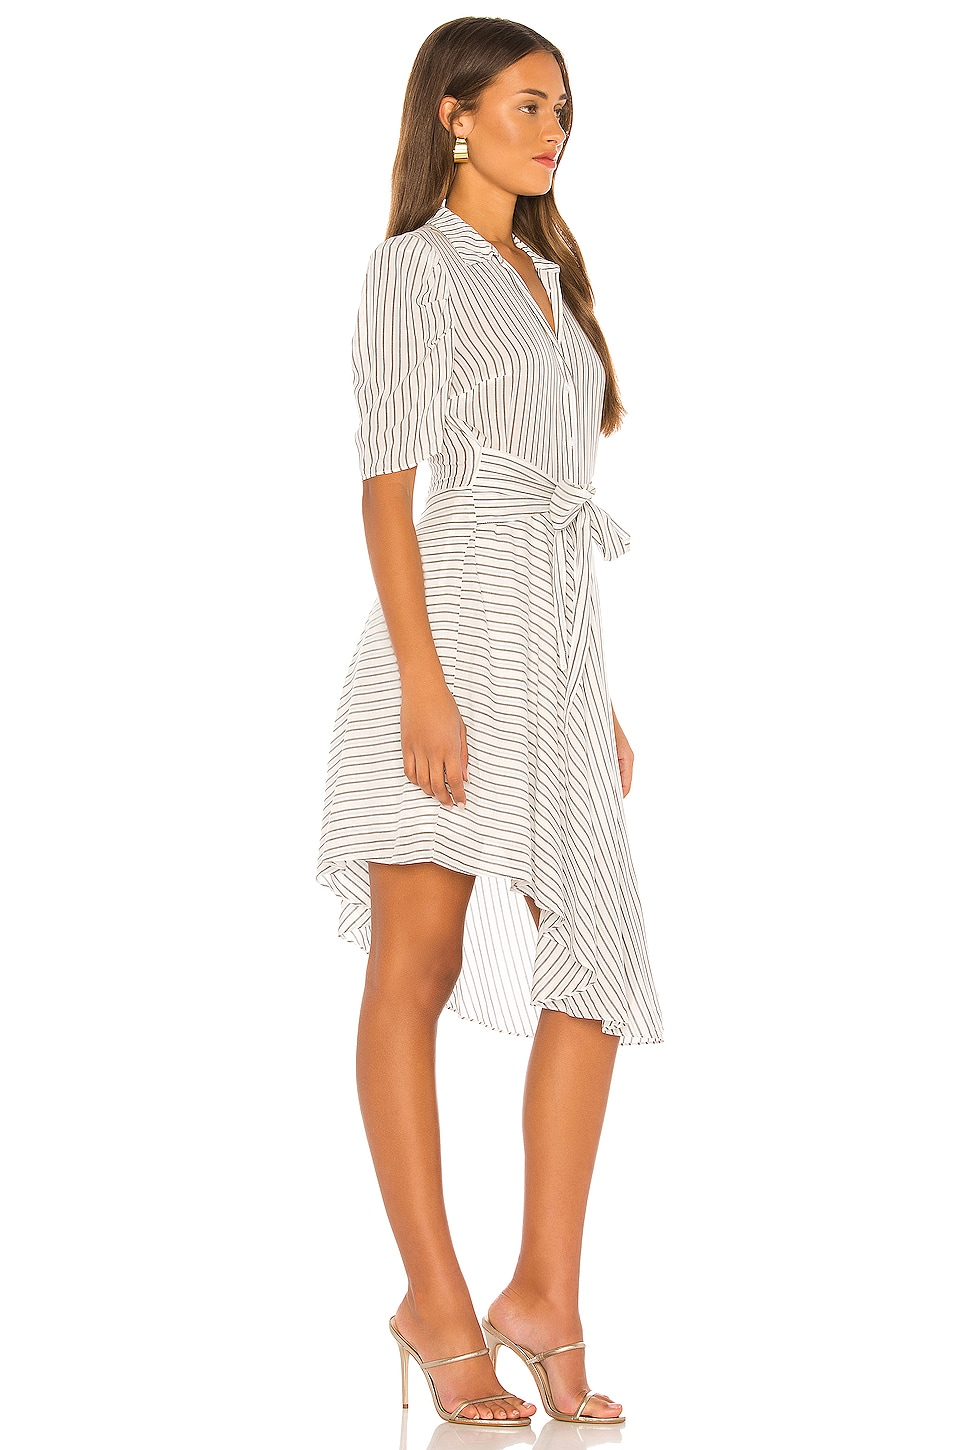 Tie Front Striped Dress, view 2, click to view large image.